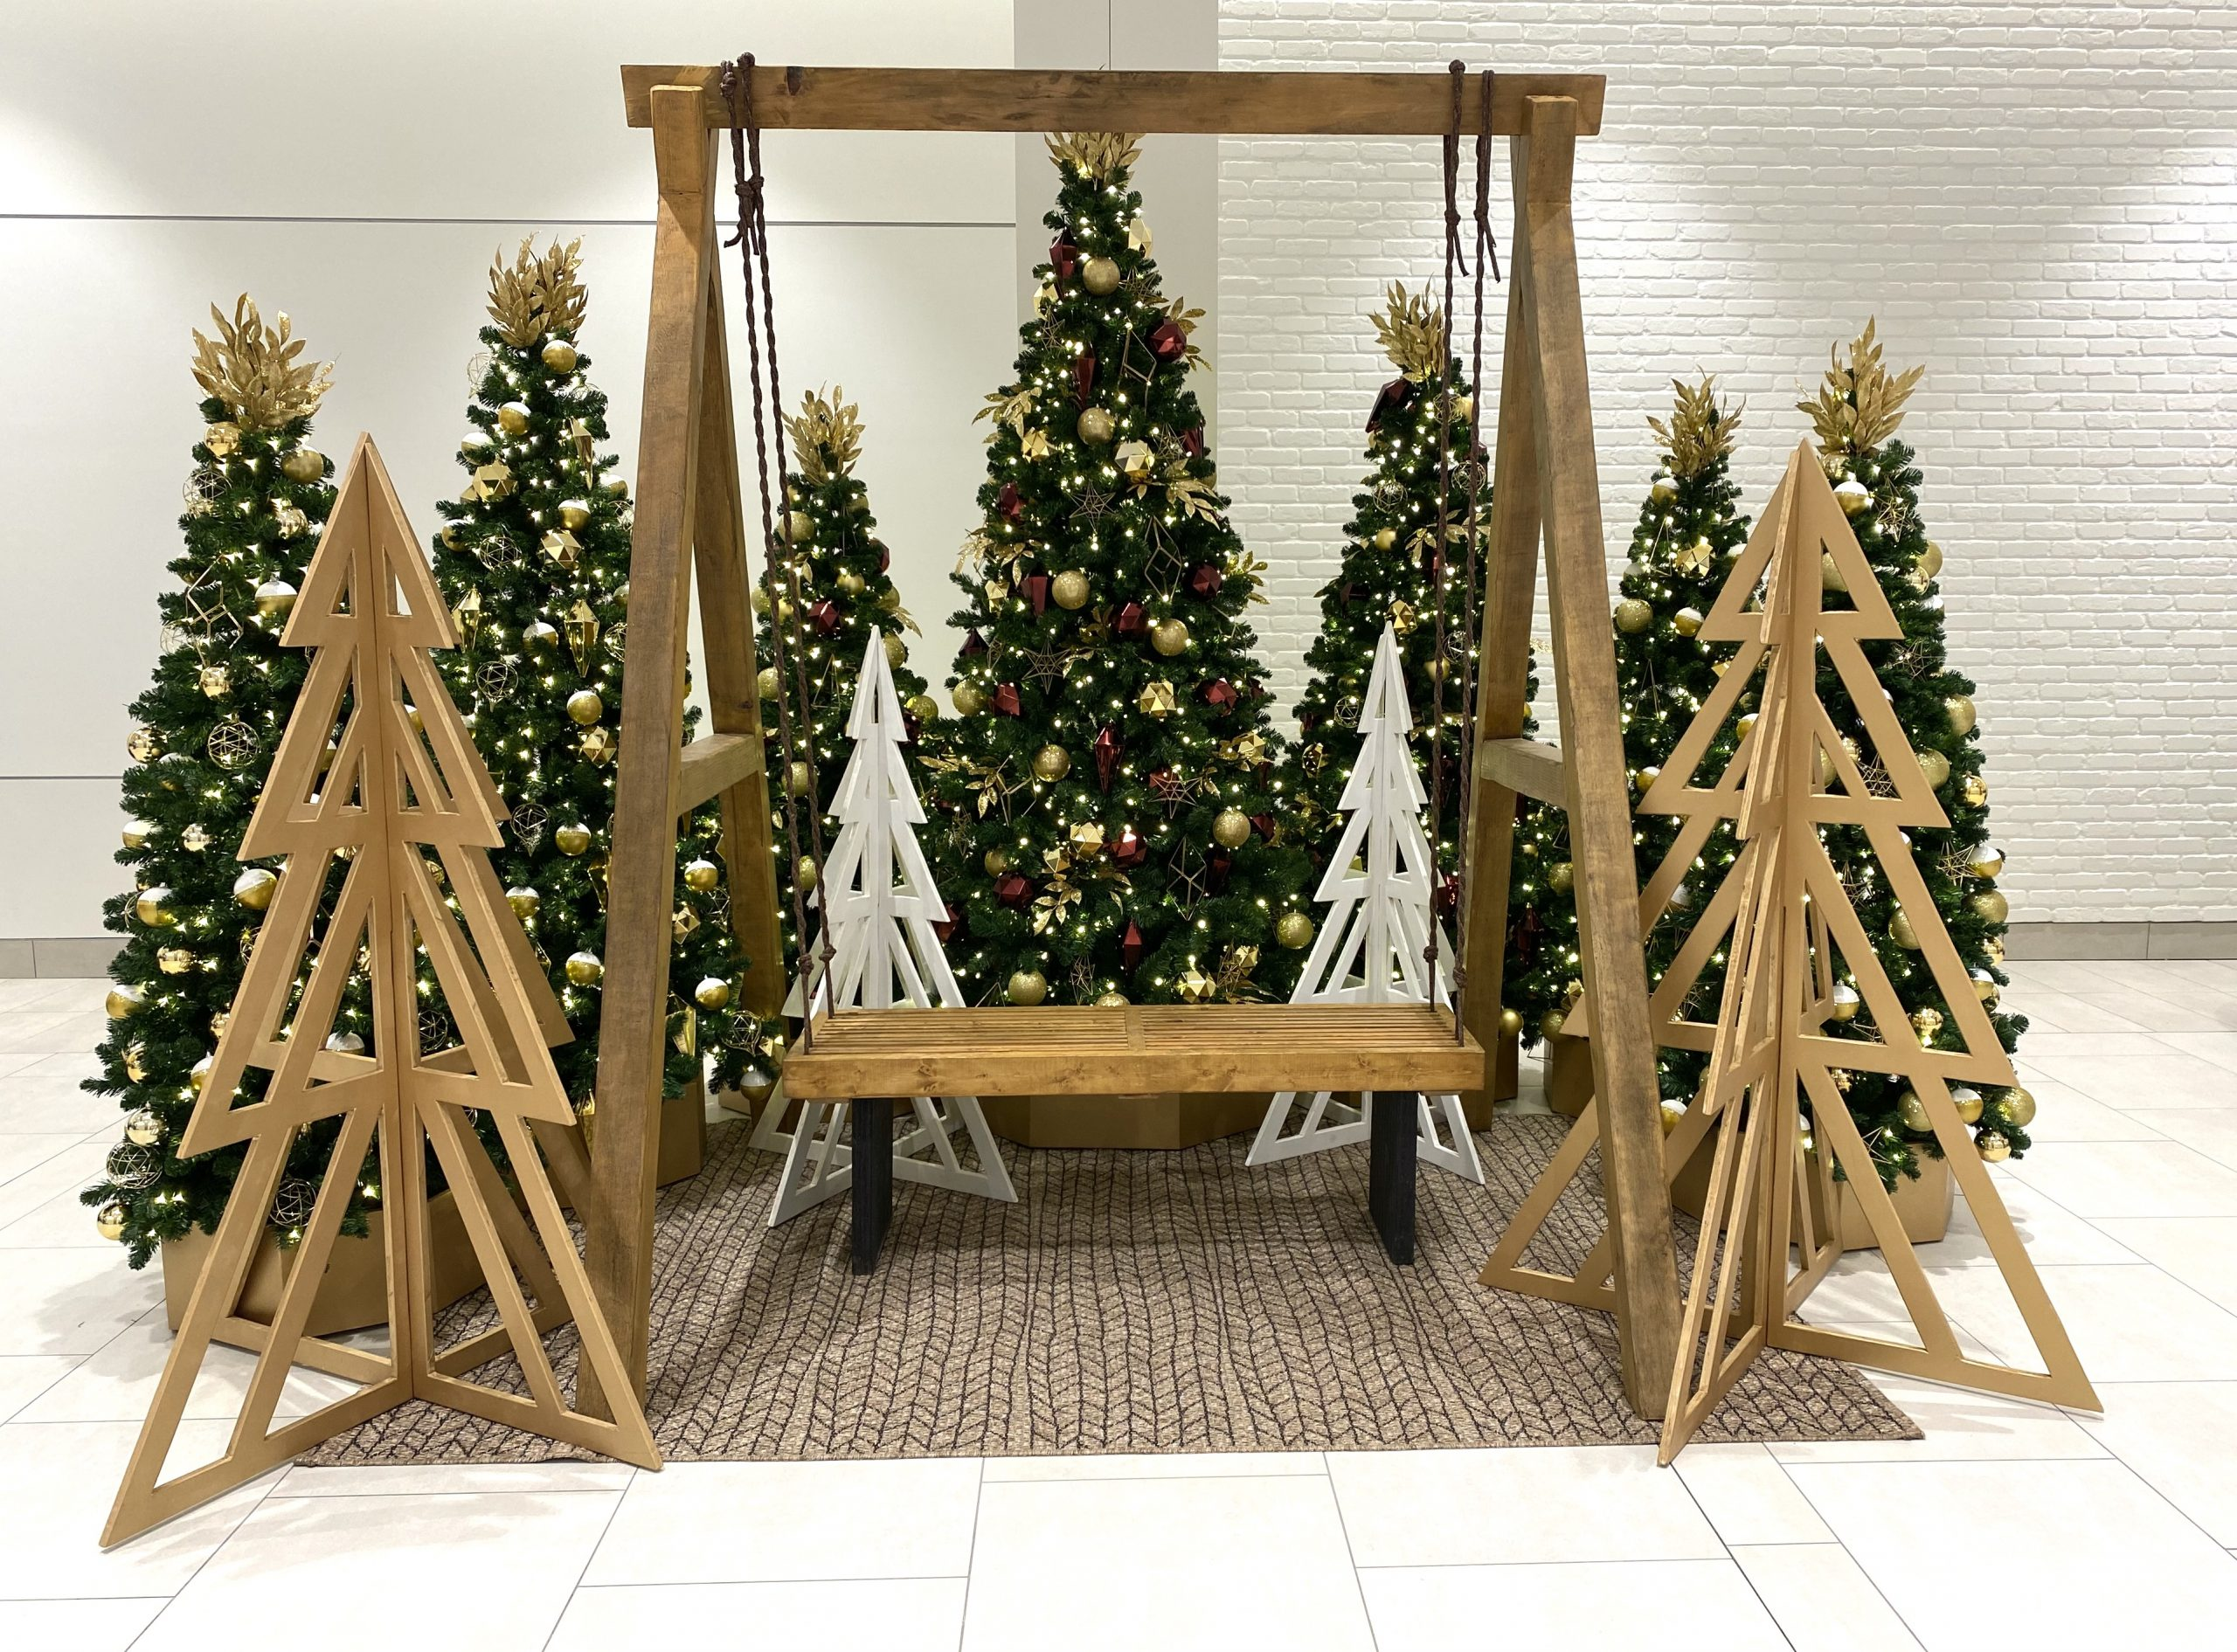 Custom wood swing set with 3D cut out trees and burgundy and gold decorated artificial christmas trees, photo op